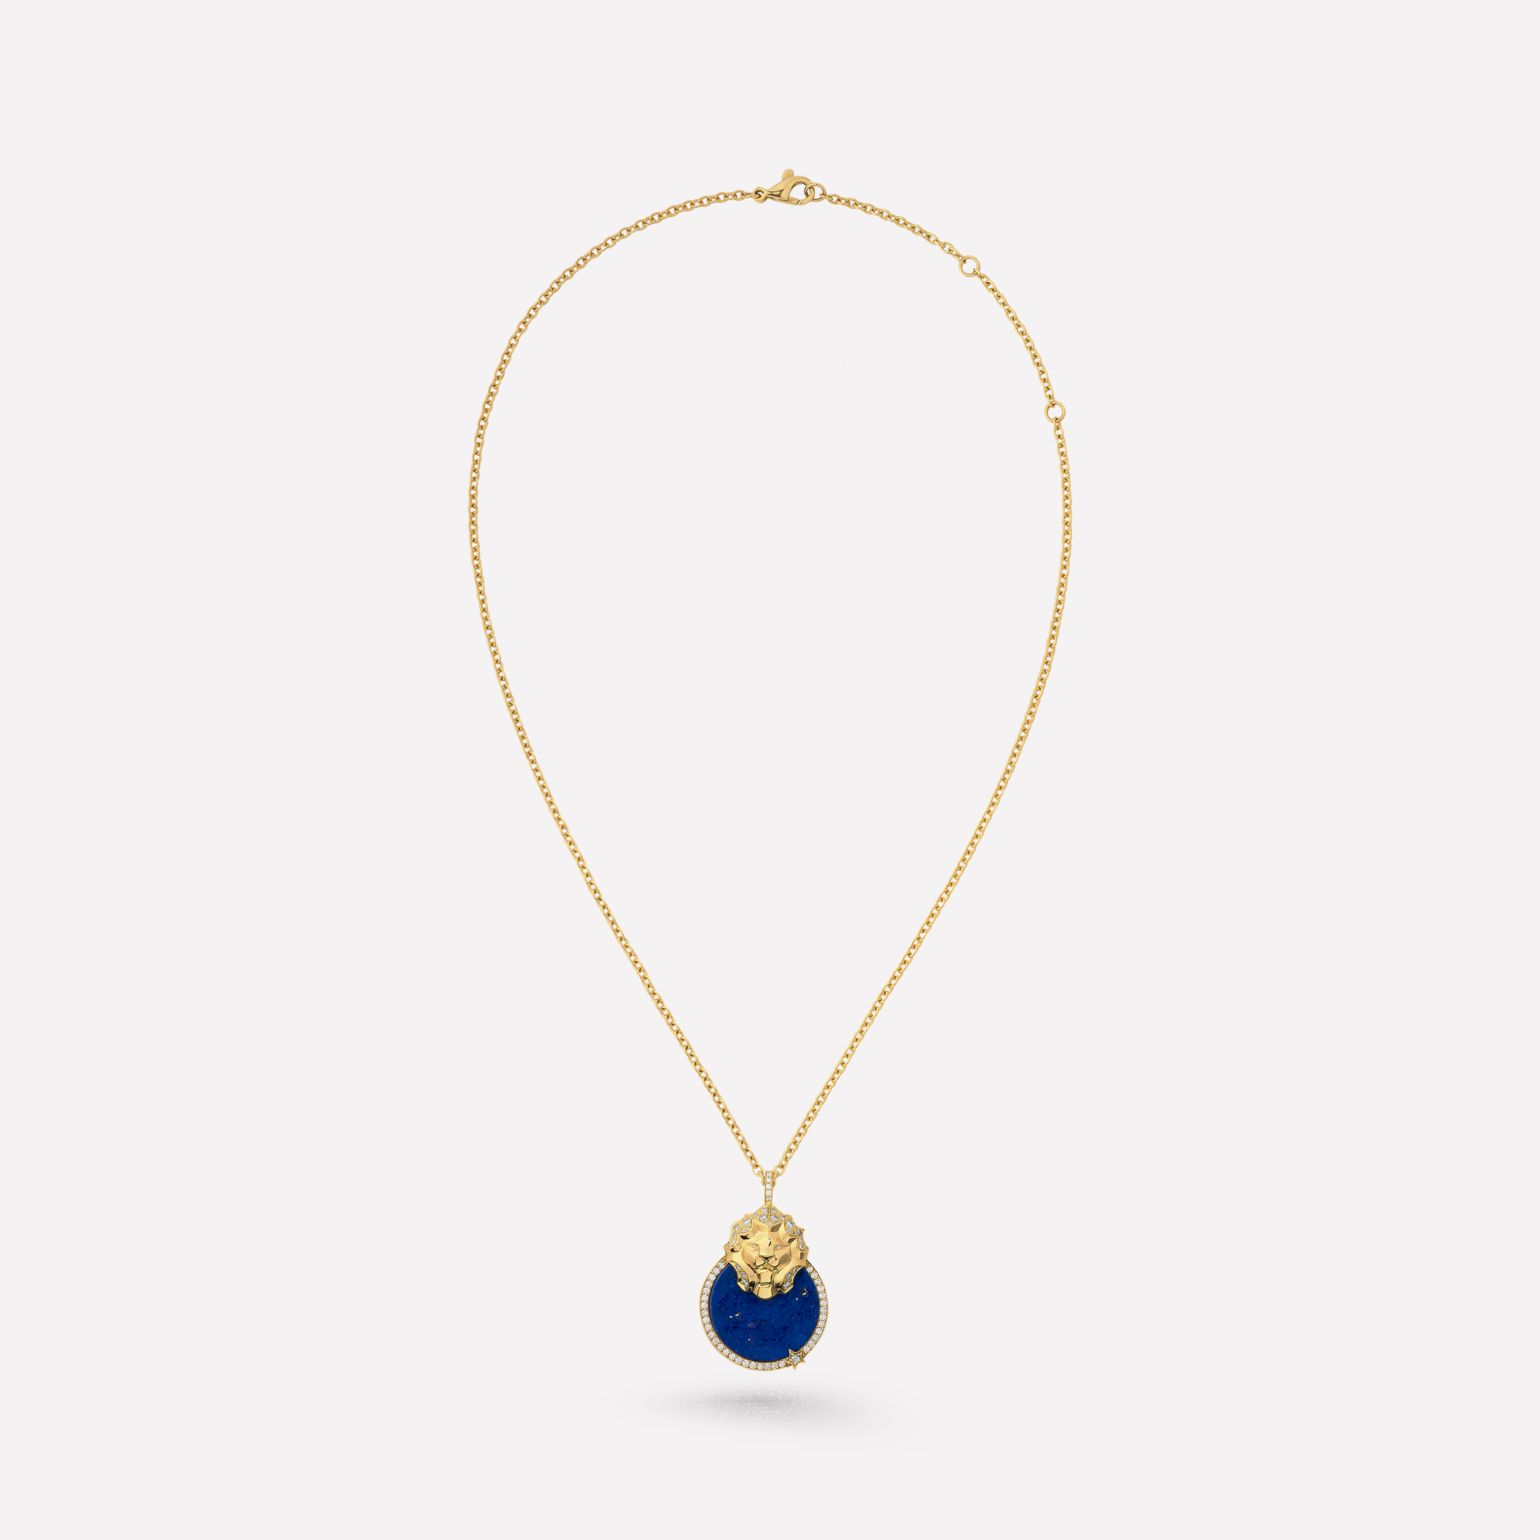 Lion Médaille necklace 18K yellow gold, diamonds, lapis lazuli